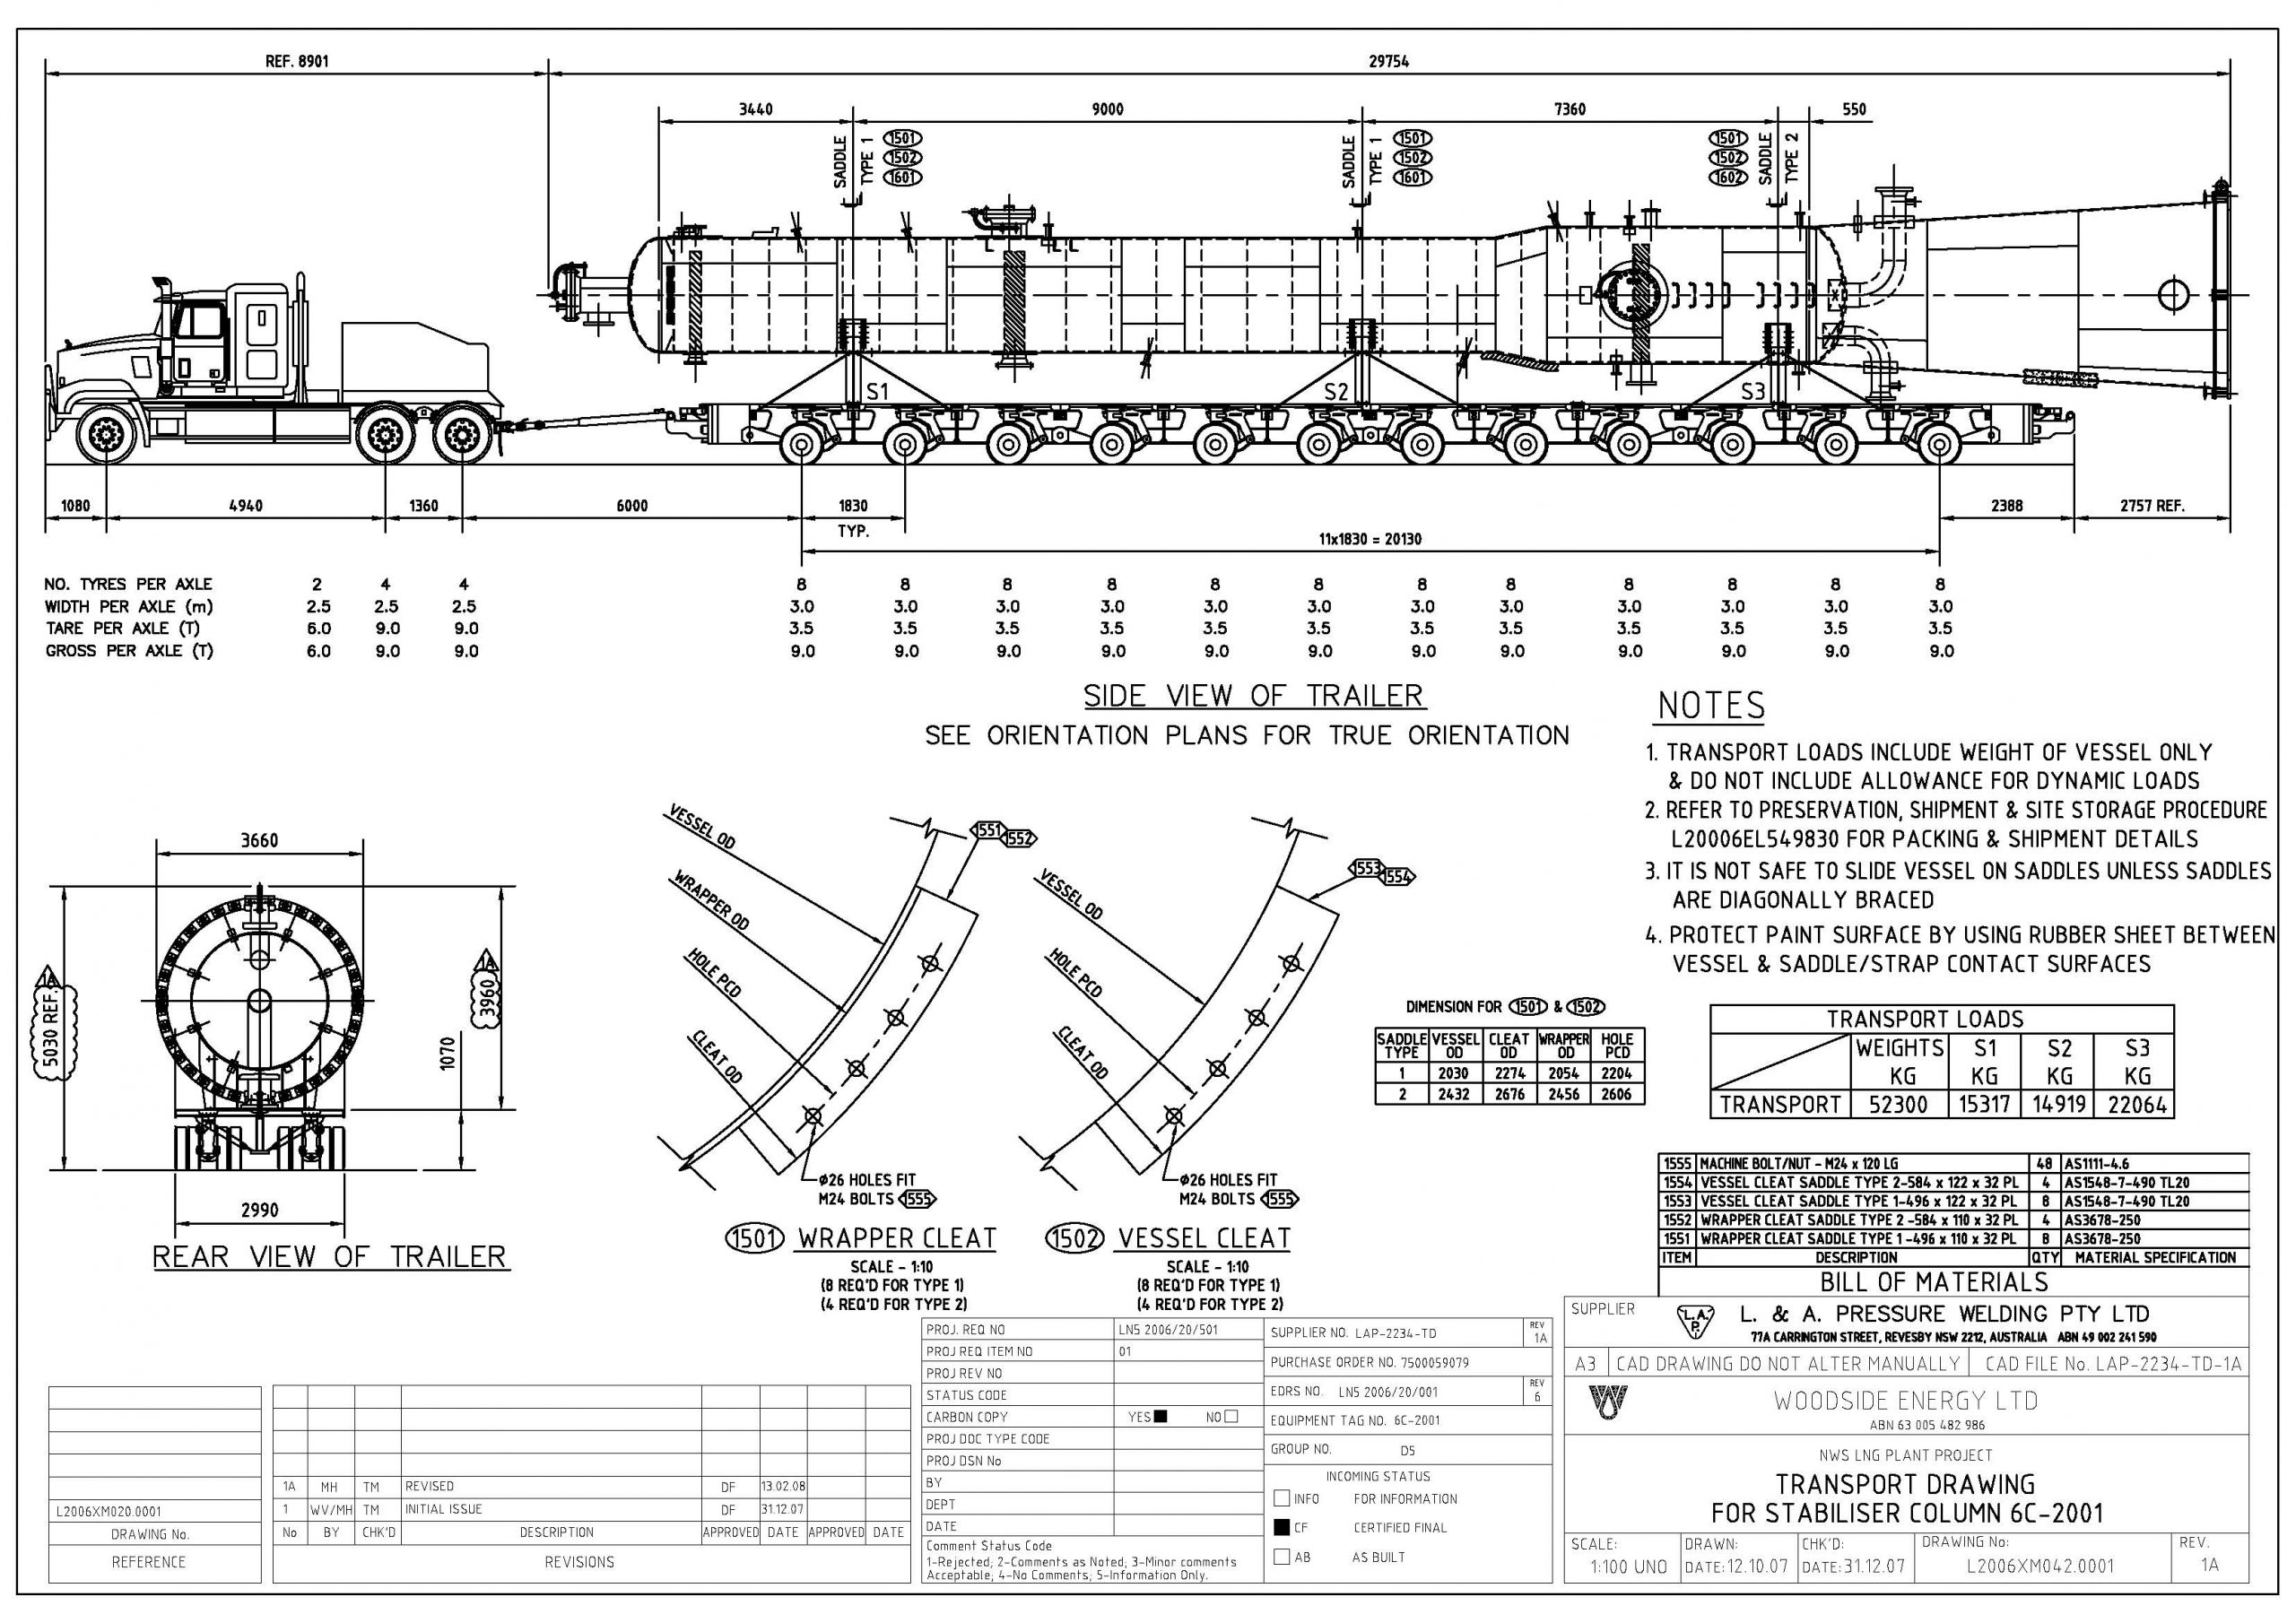 Engineering - CAD, Transport #2 (from PDF)